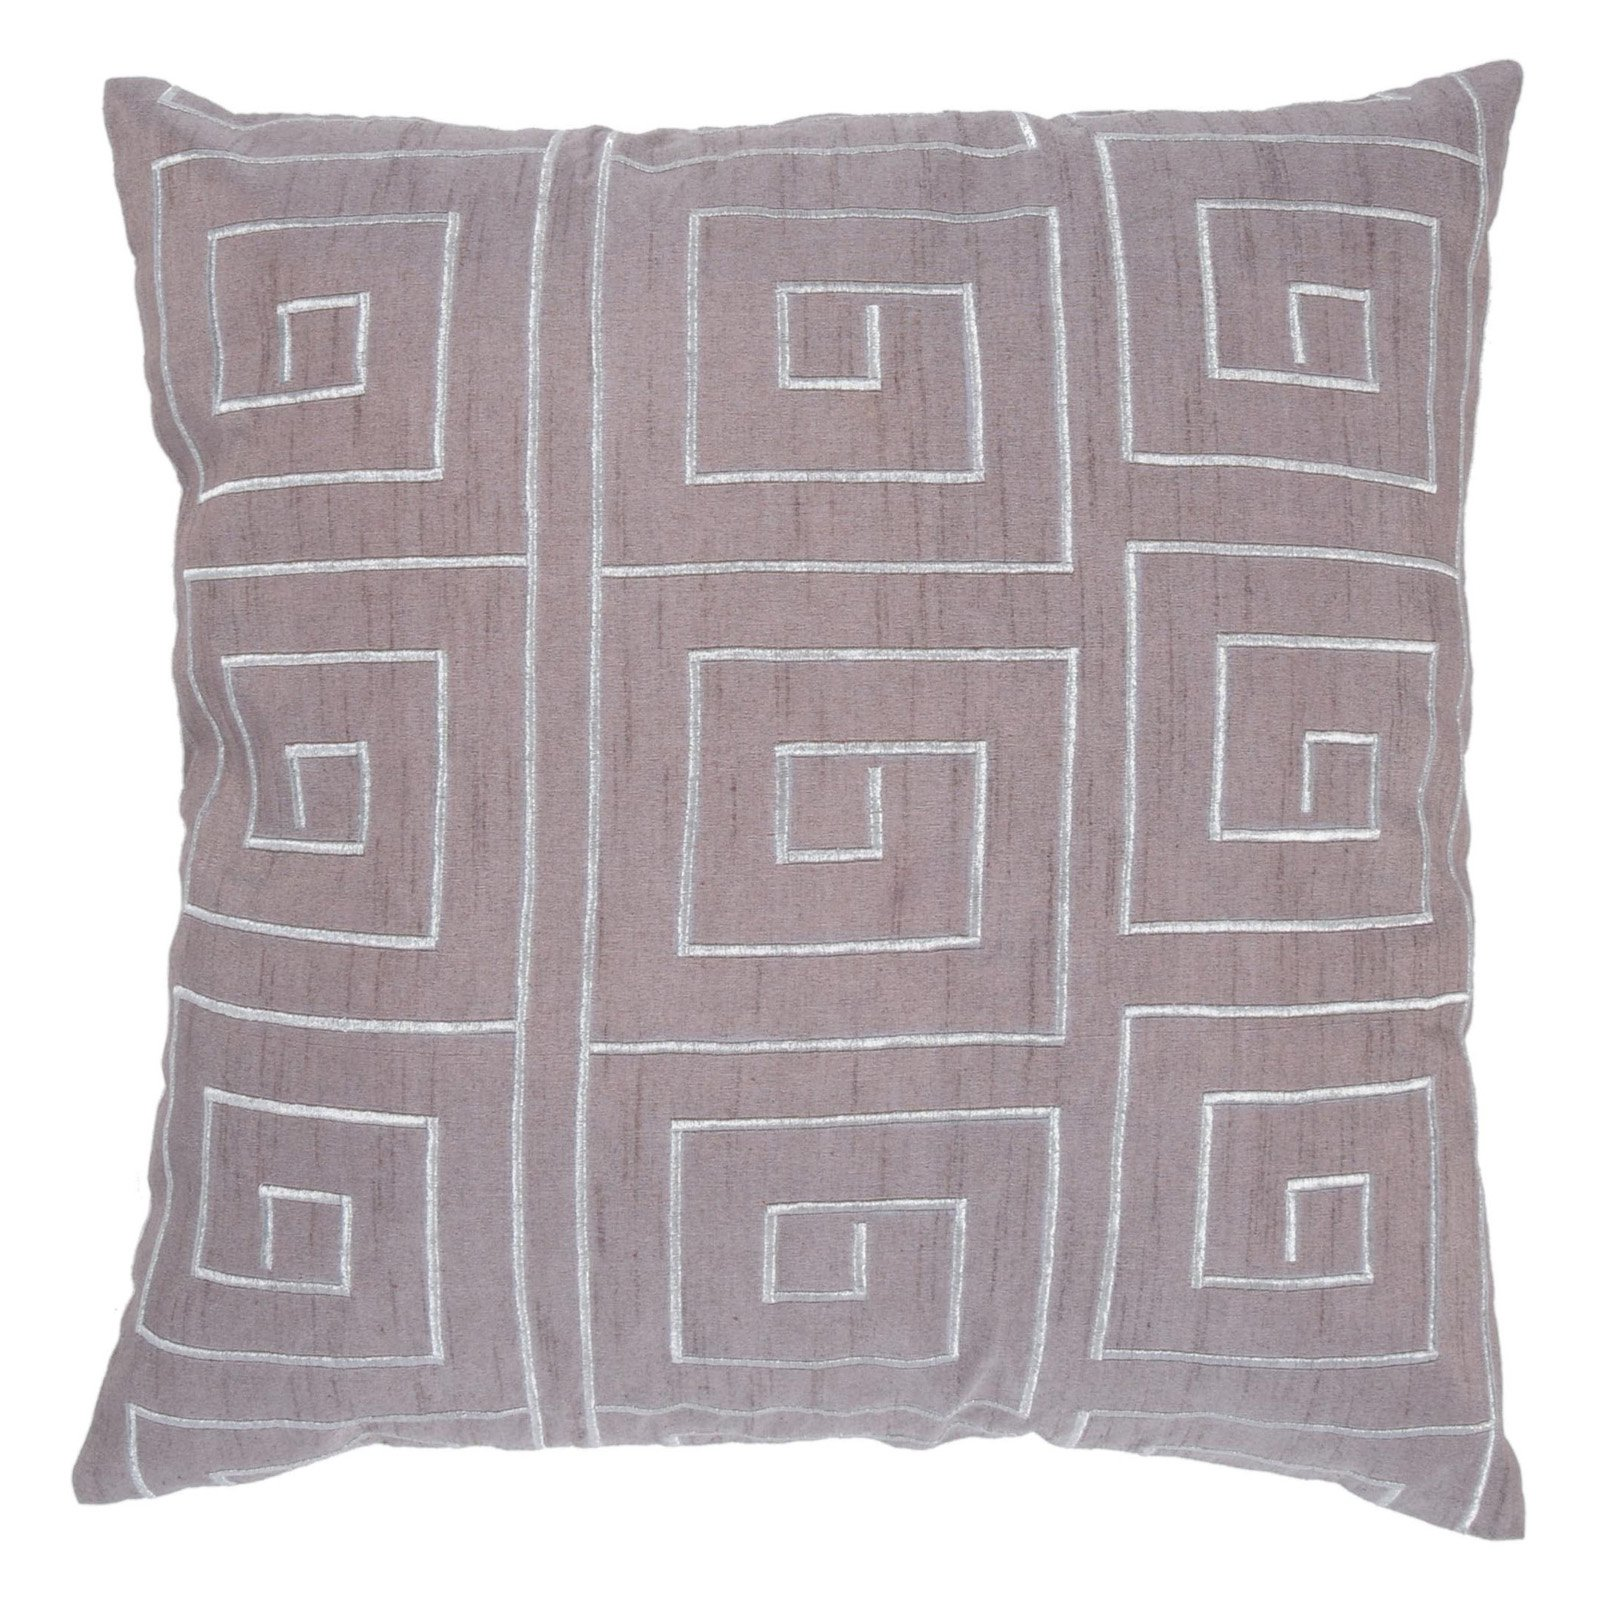 Rizzy Home Embroidered Egyptian Design Decorative Throw Pillow